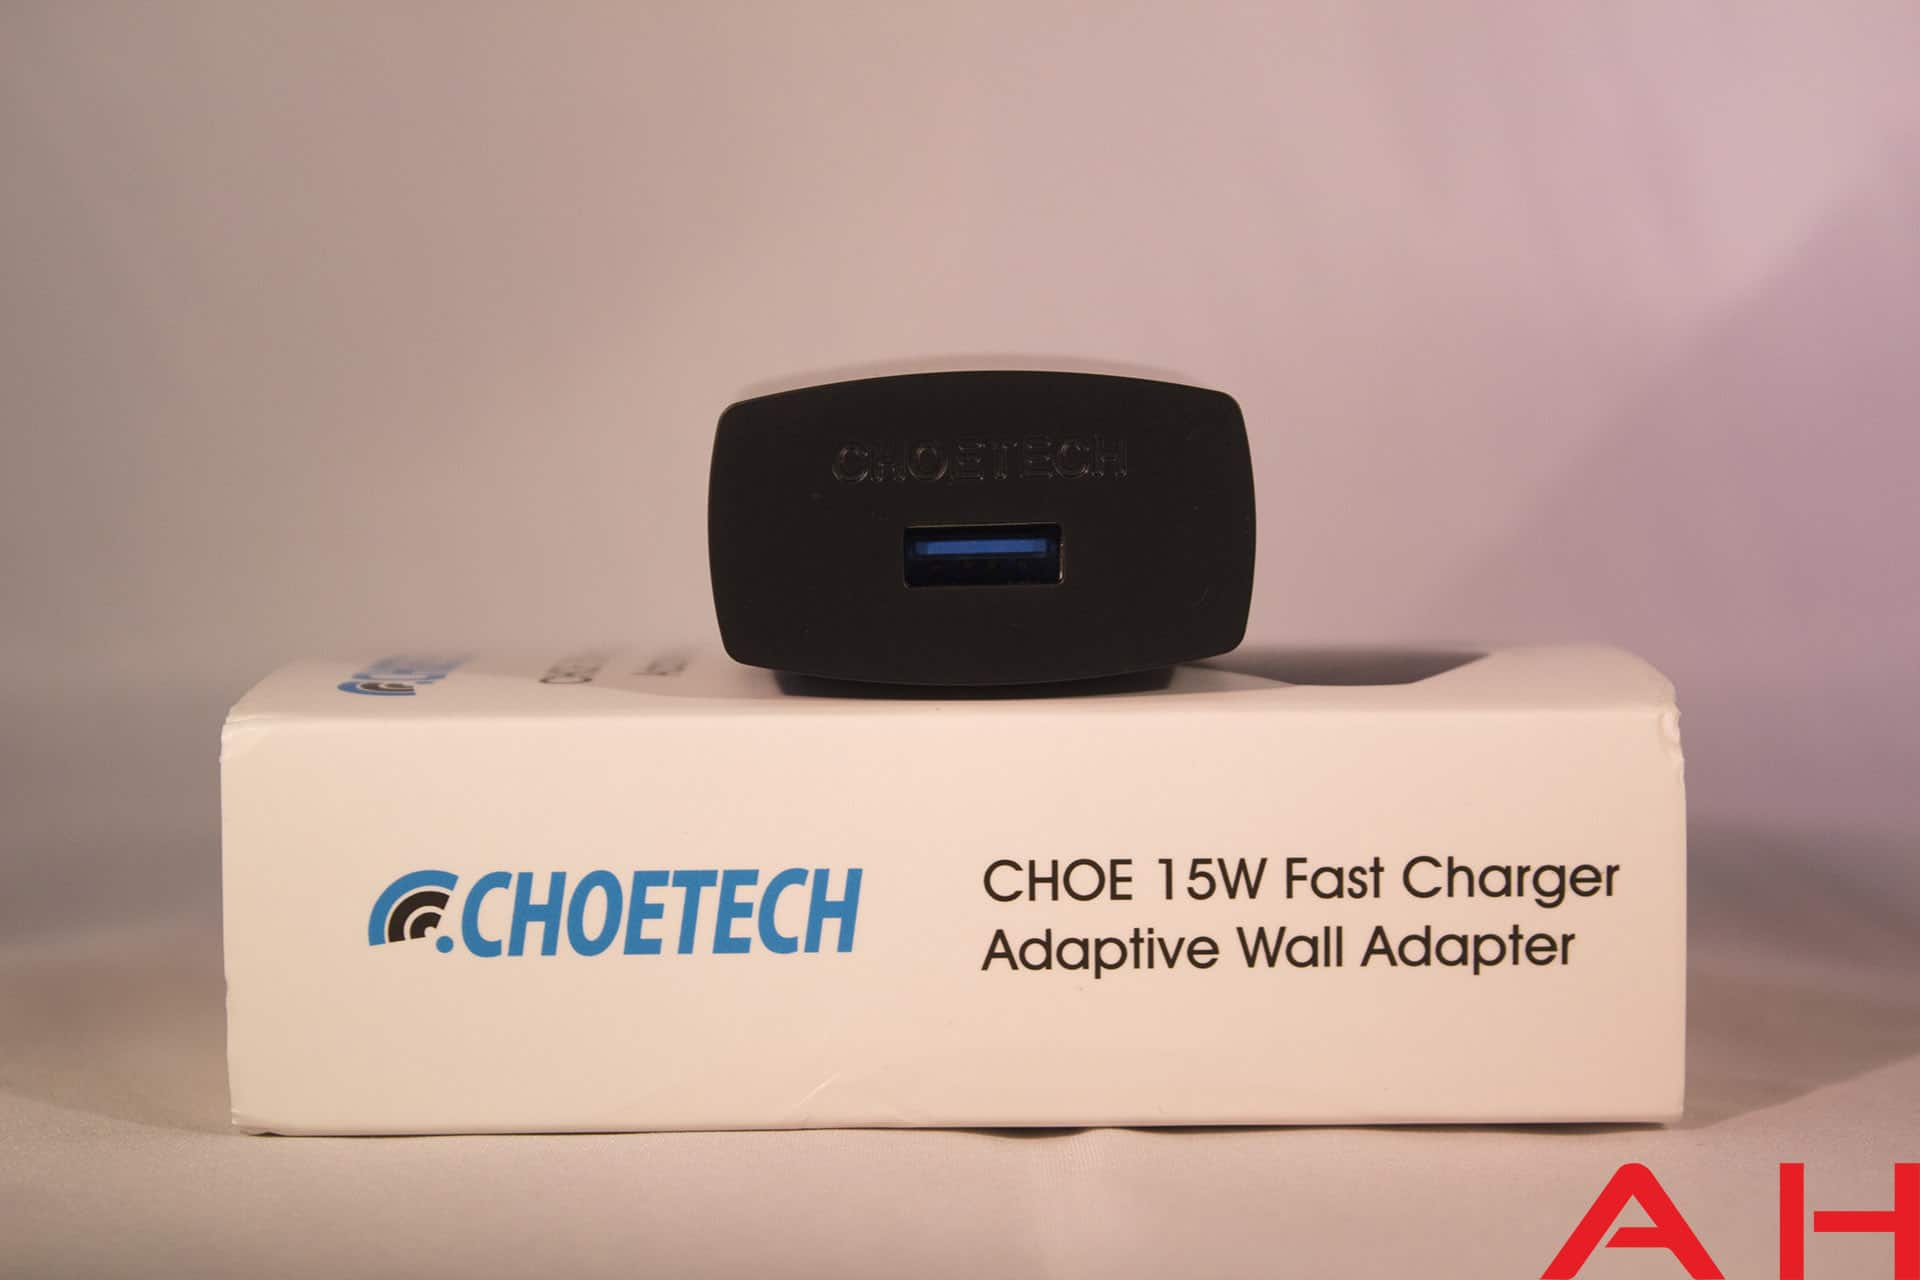 Choetech quickcharge 2